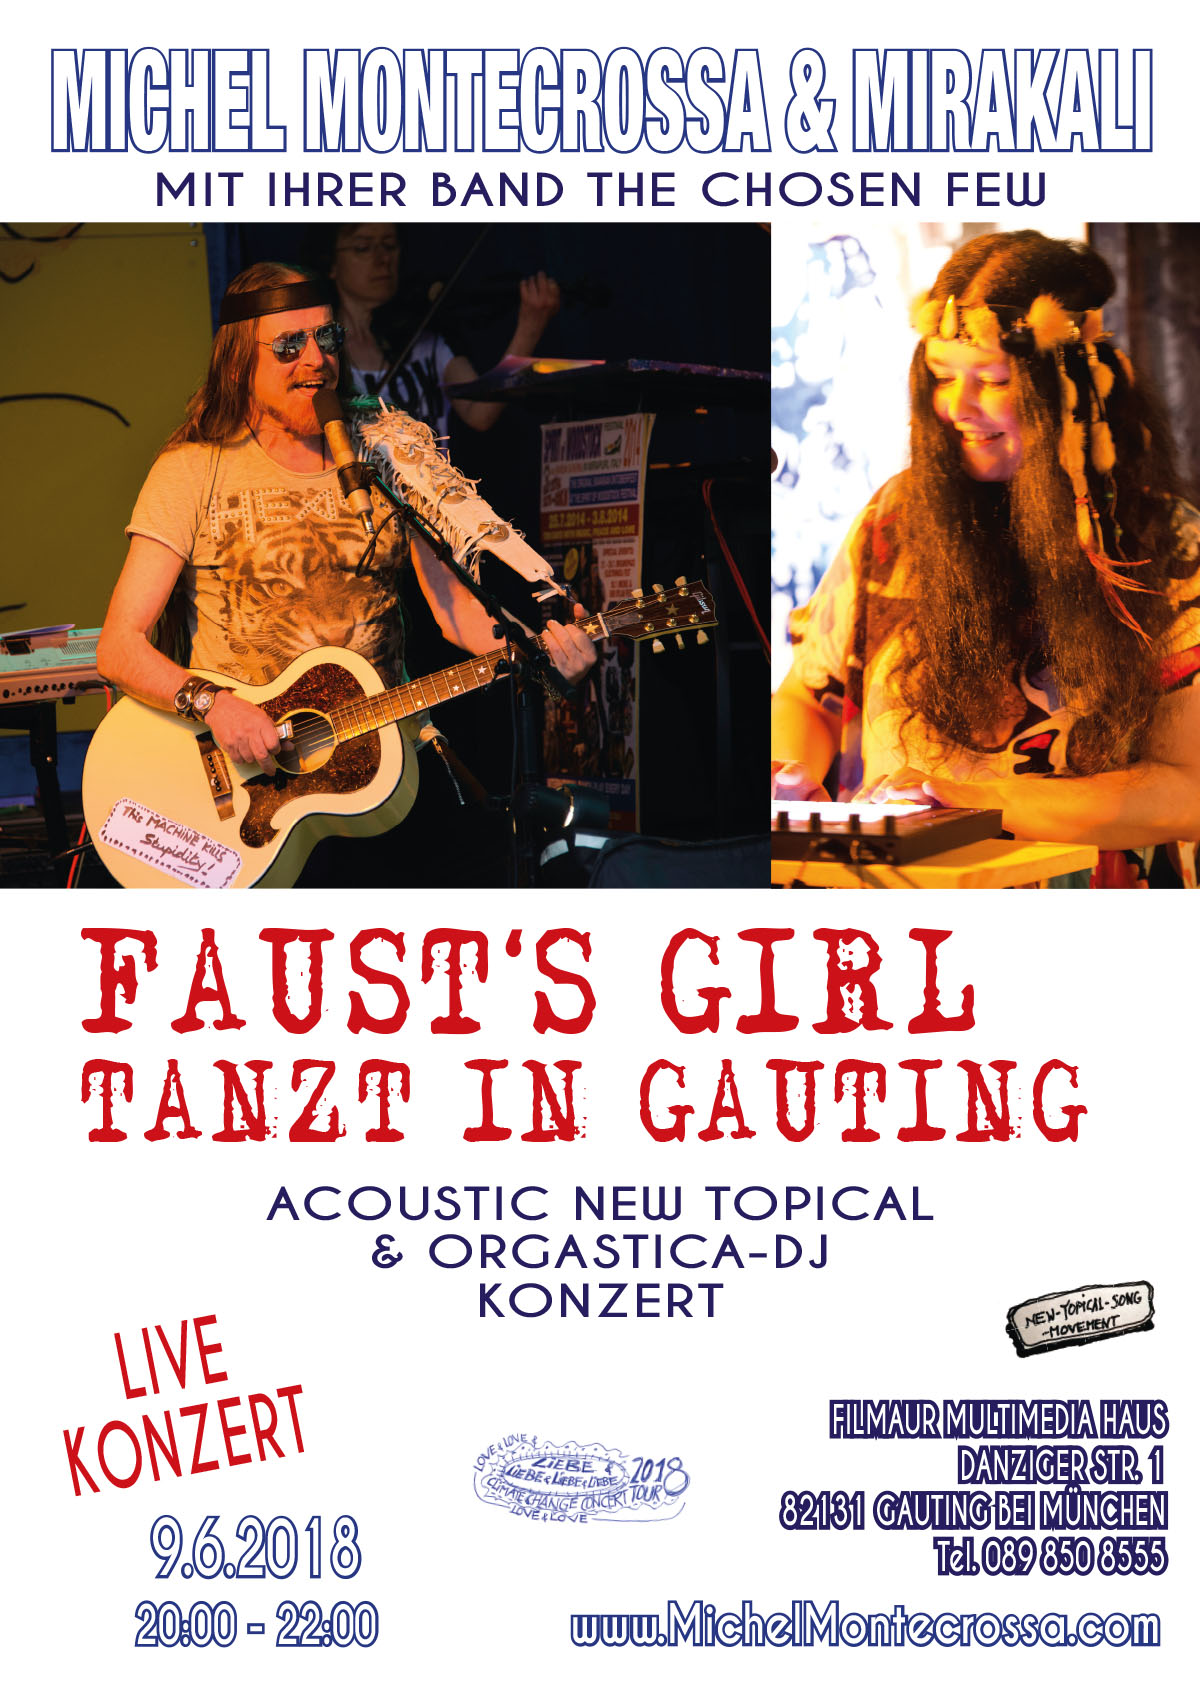 'FAUST'S GIRL TANZT IN GAUTING' Concert with Michel Montecrossa & Mirakali and The Chosen Few